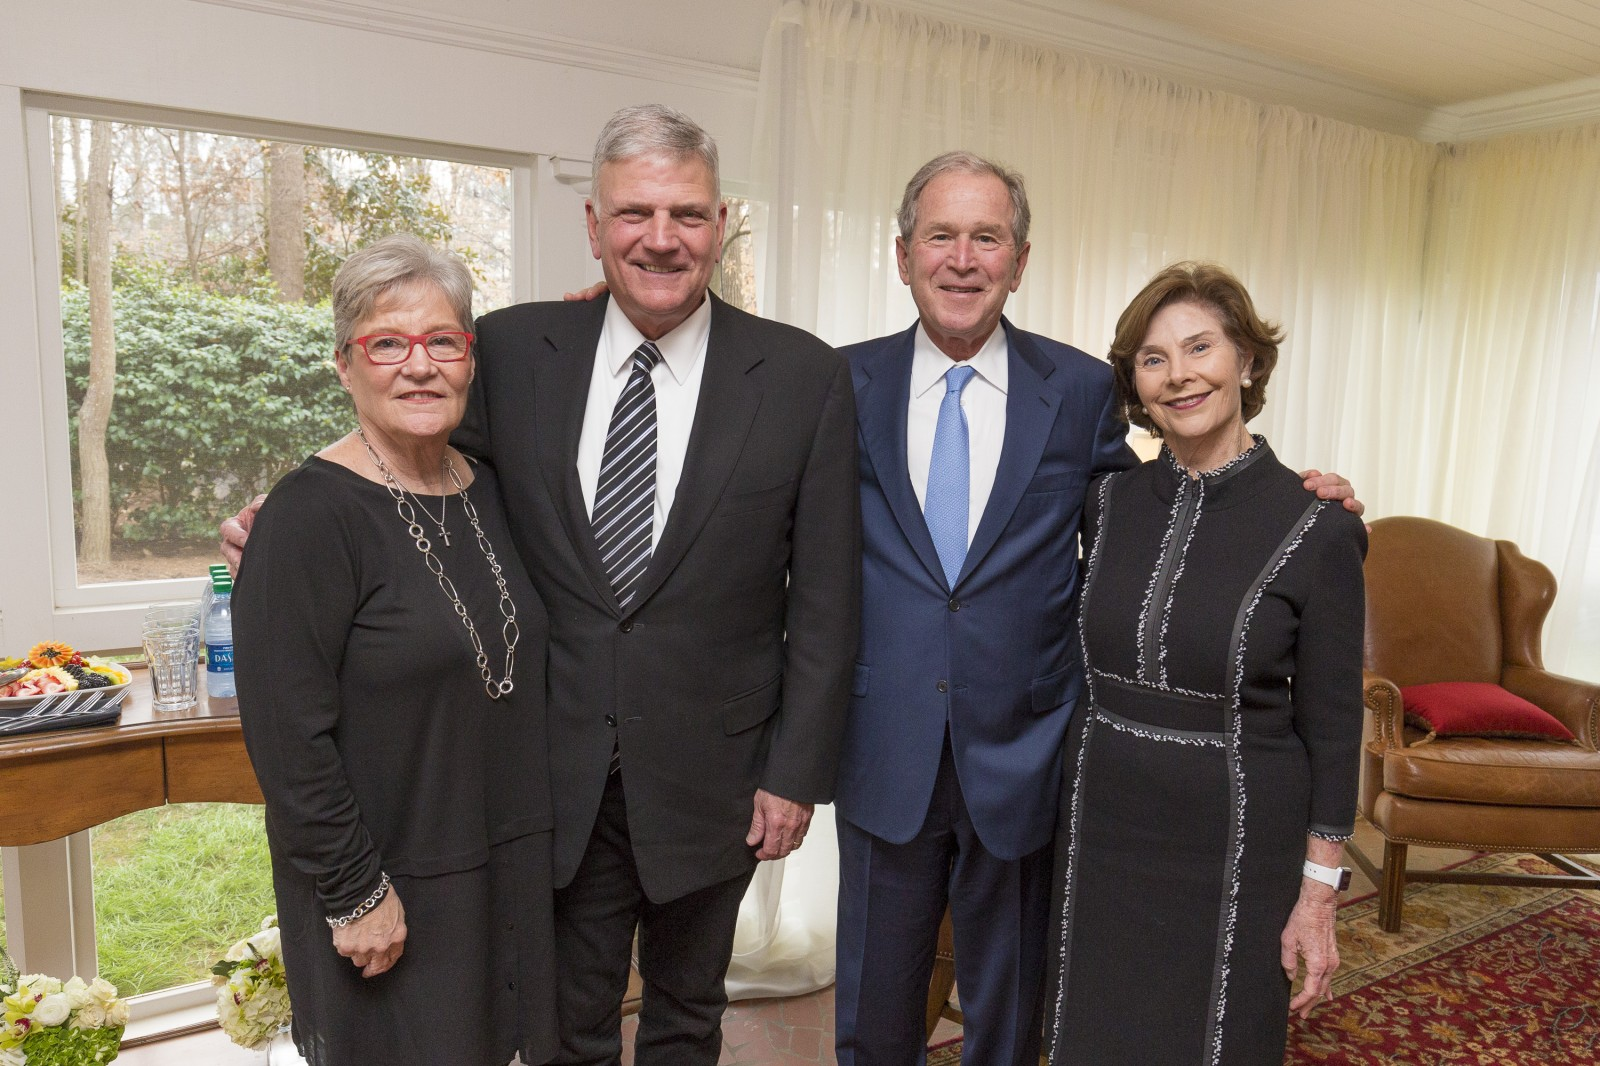 Former president George W. Bush and former first lady Laura Bush at the Billy Graham visitation. Photo: Billy Graham Evangelistic Association<p></p>